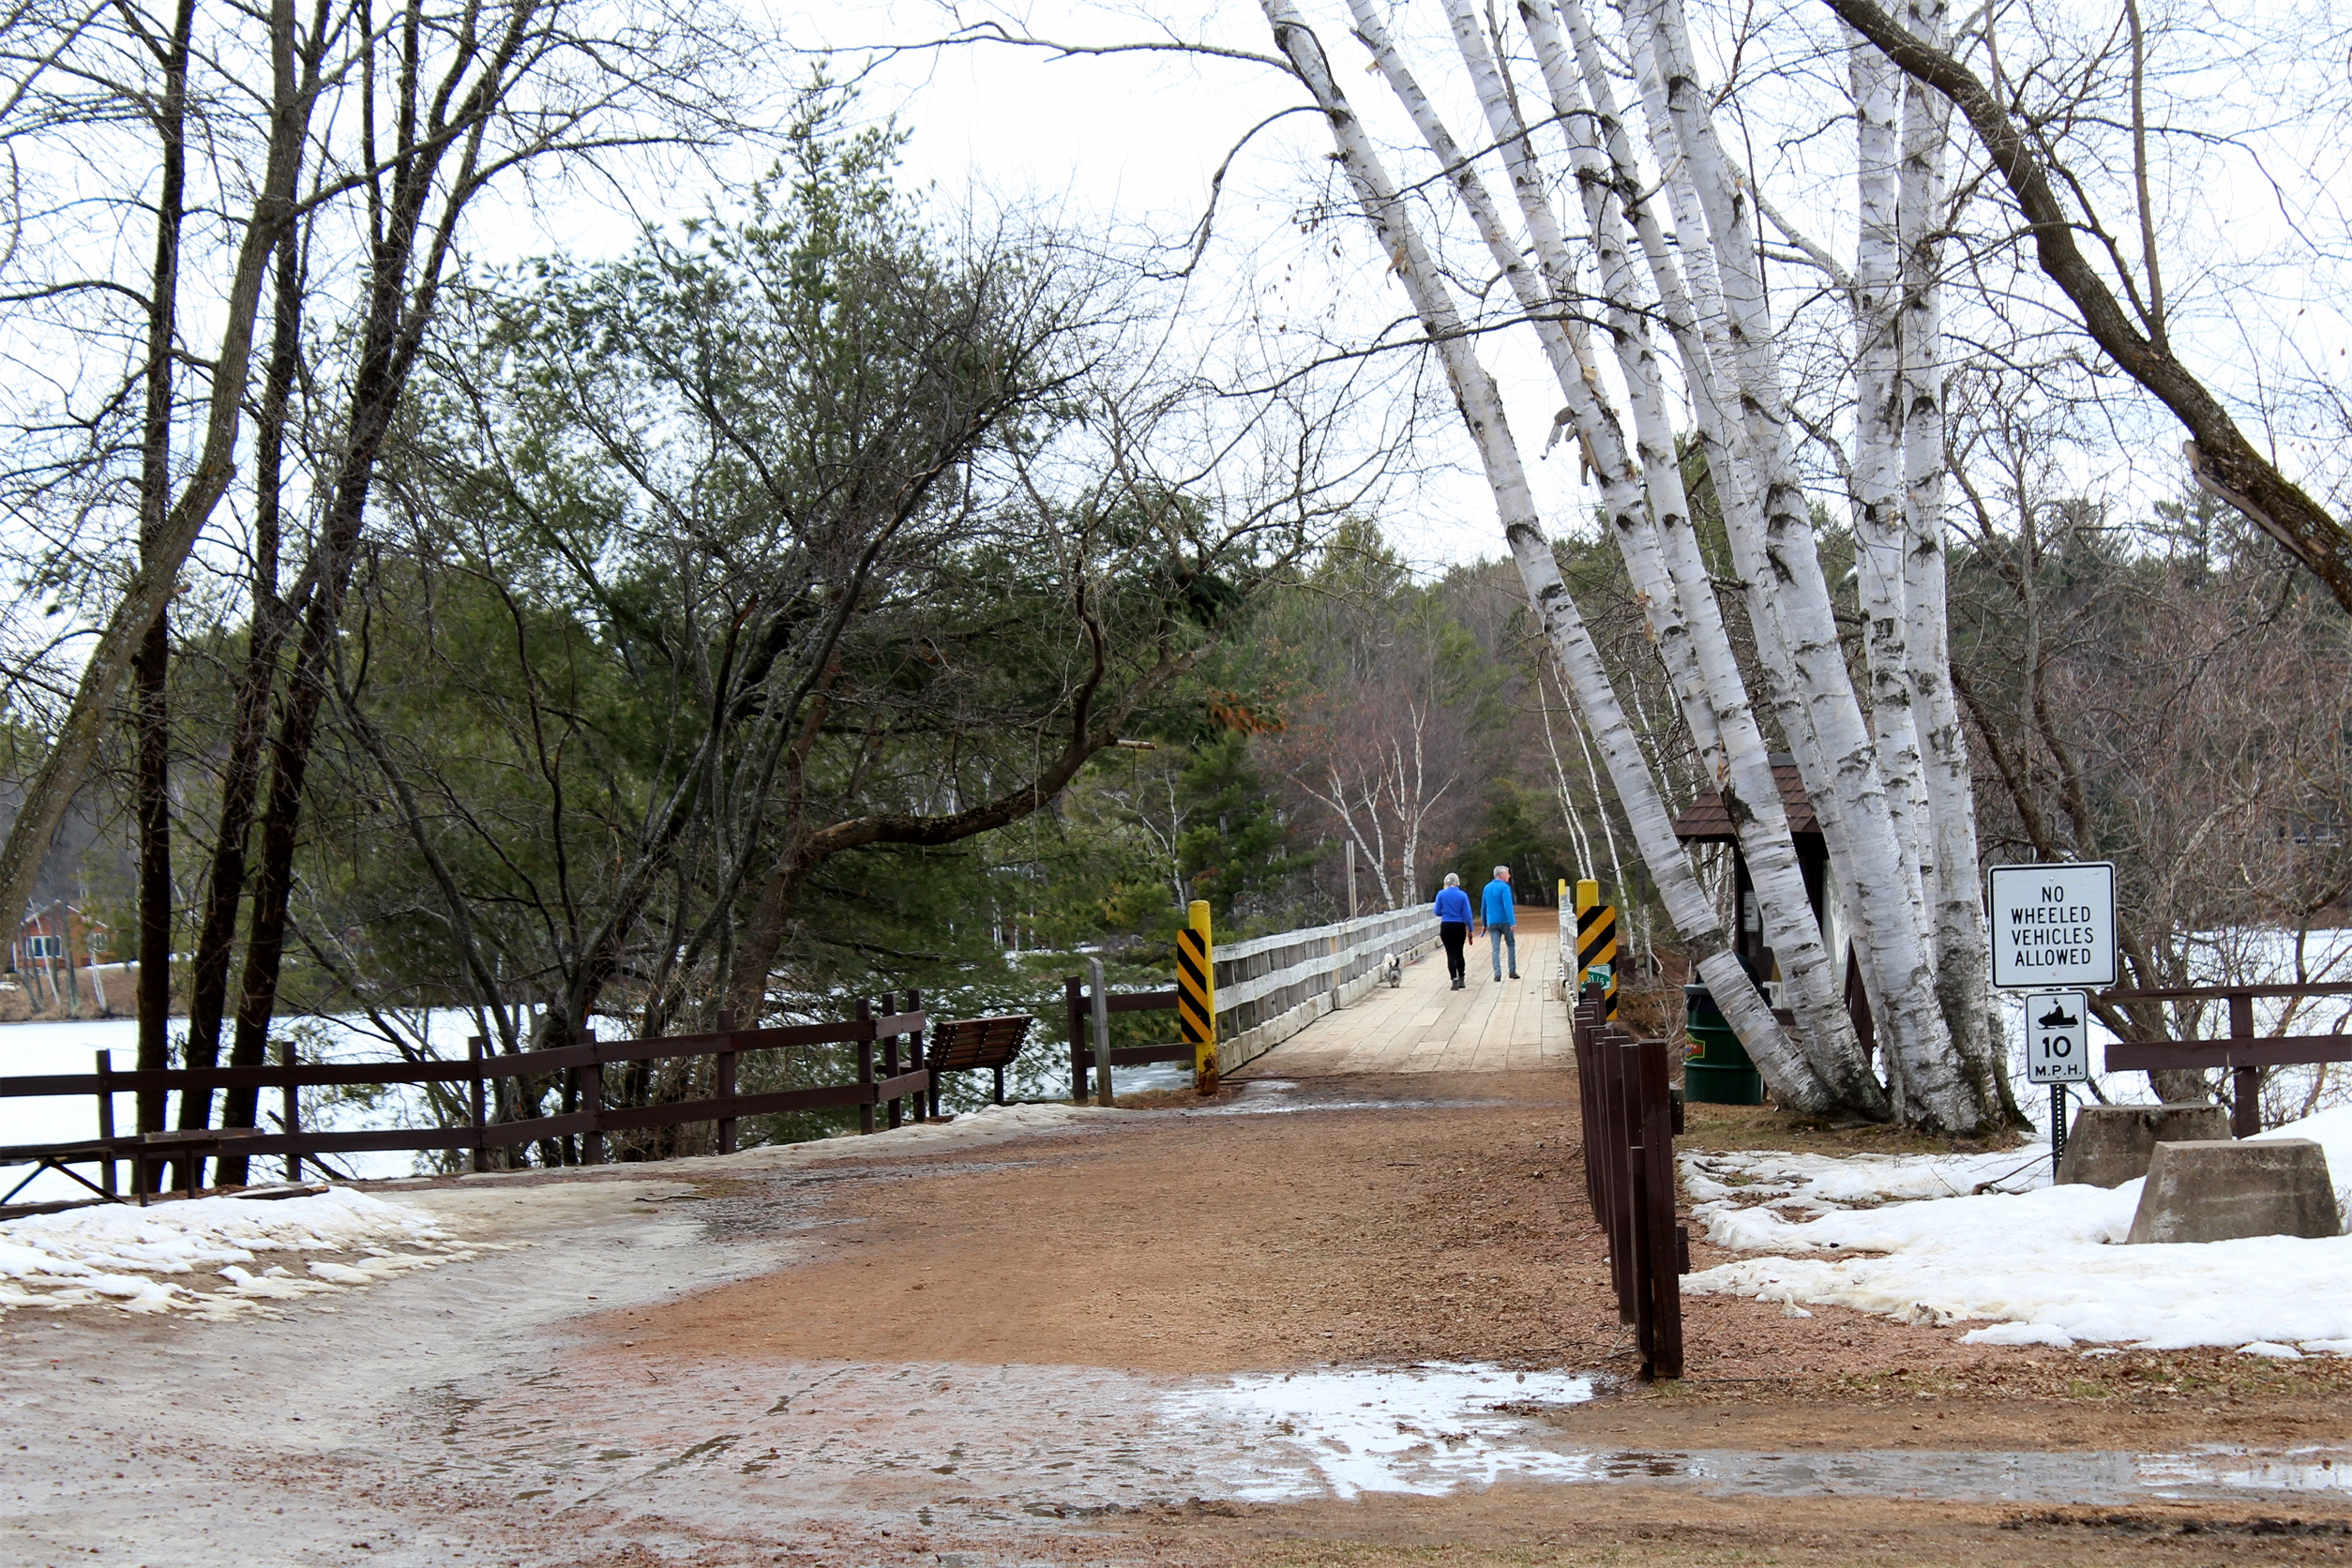 In late April, the Bearskin Trail by the trestle in Minocqua was almost clear of ice and snow. Kim Johnson photo